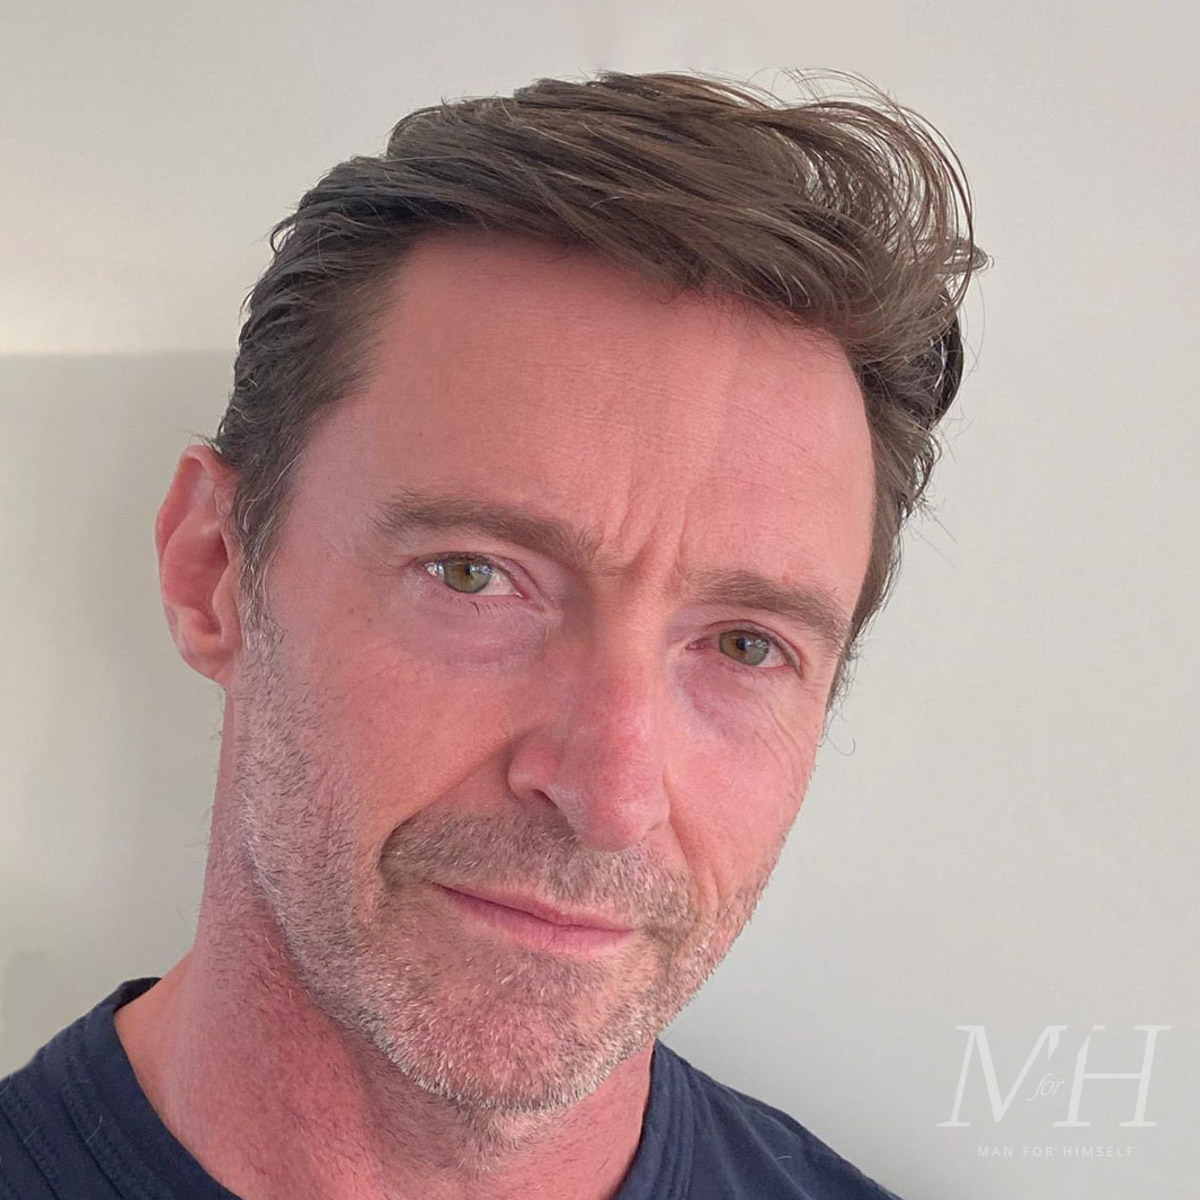 hugh-jackman-thinning-hair-grooming-mens-hairstyle-MFHC39-man-for-himself-2 a list mens hairstyles